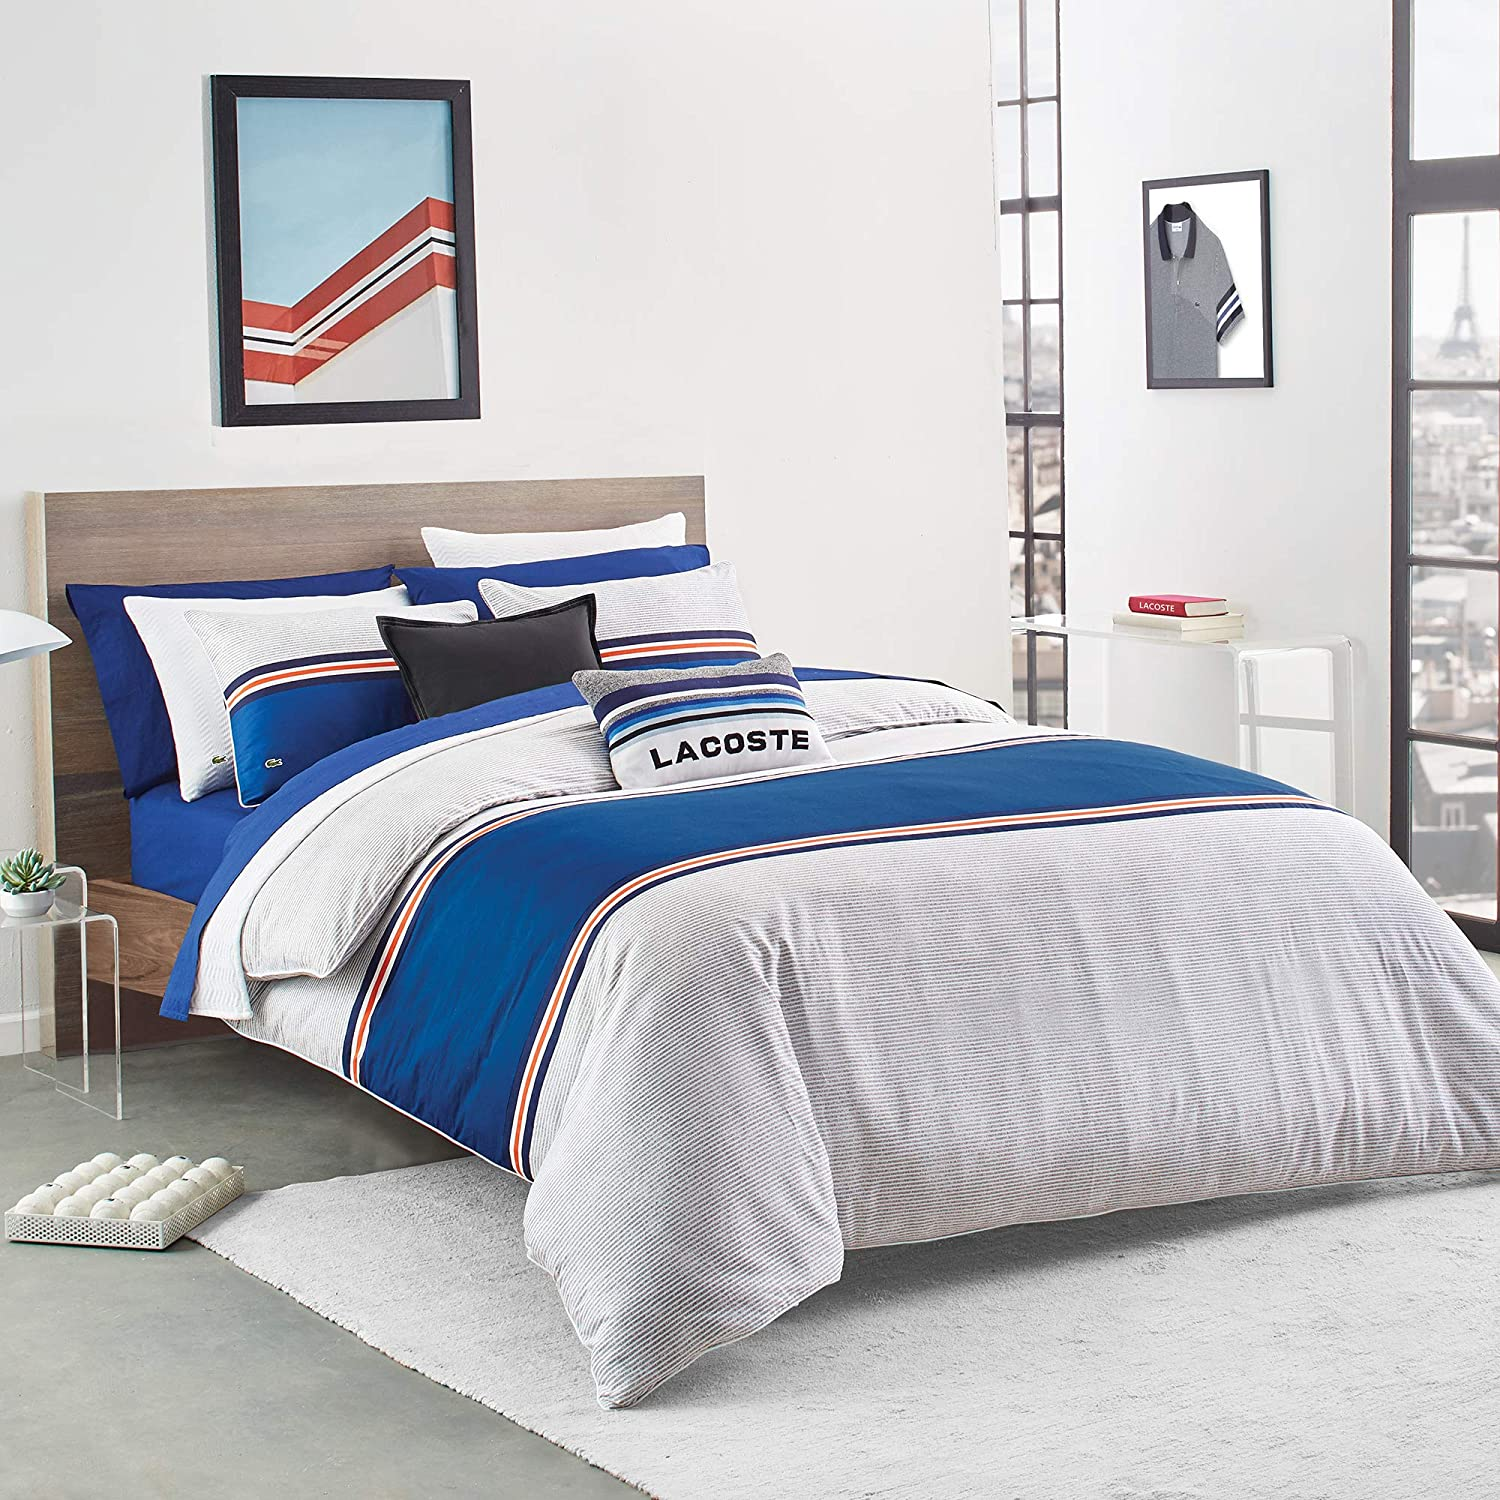 Lacoste Praloup Duvet Set Blue Max 65% OFF Queen Easy-to-use Full White